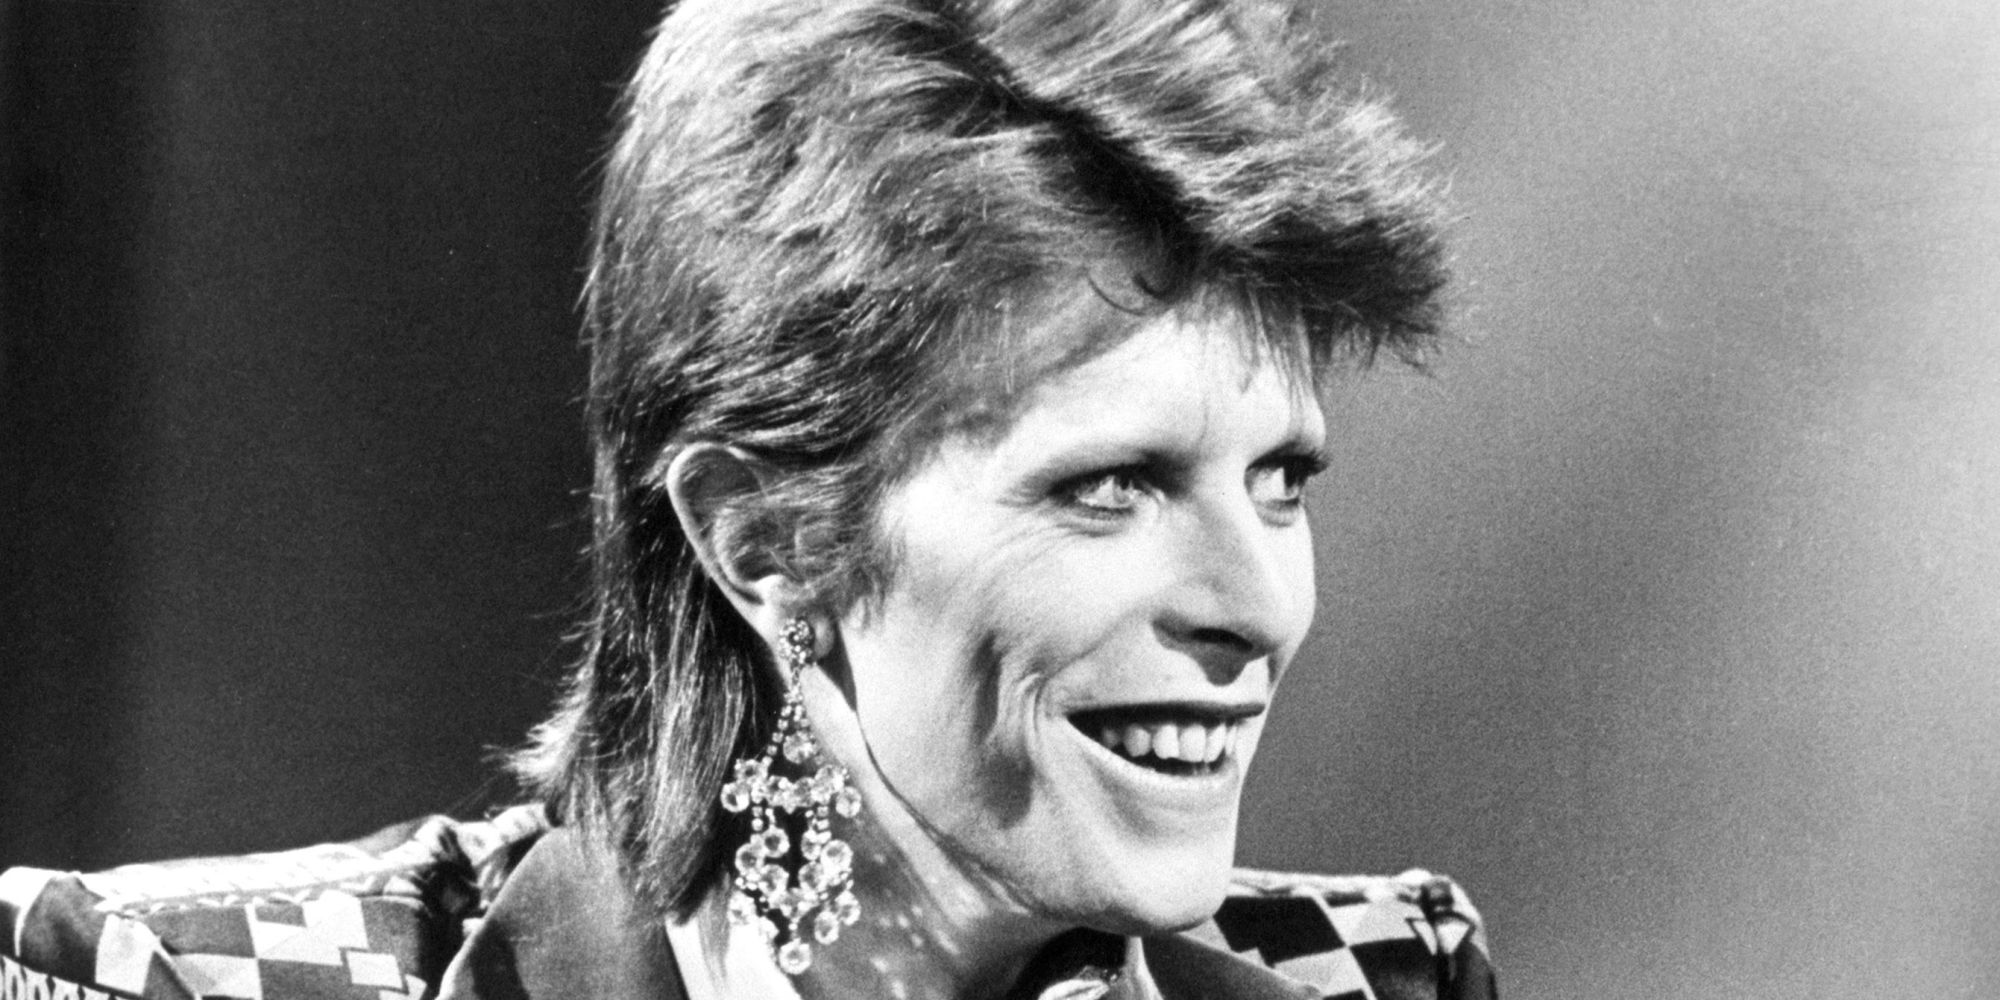 David Bowie Dead: Stars Pay Tribute To 'Ziggy Stardust' Singer, After...